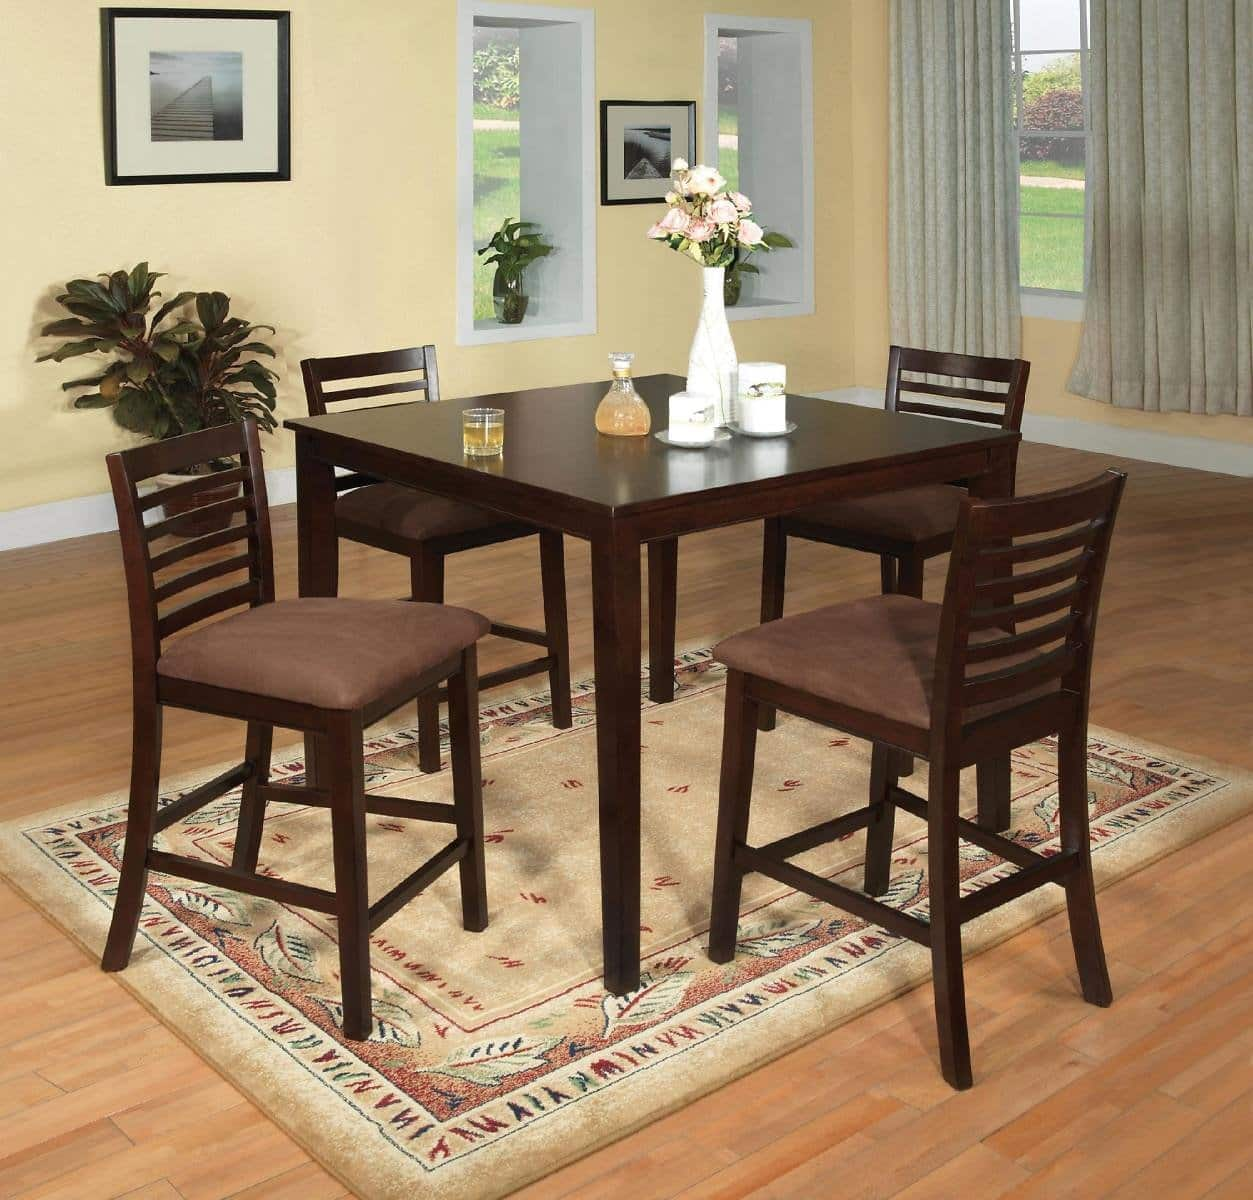 Furniture Of America Meckins Espresso 5 Piece Counter Height Dining Set  $394.99 + Fs